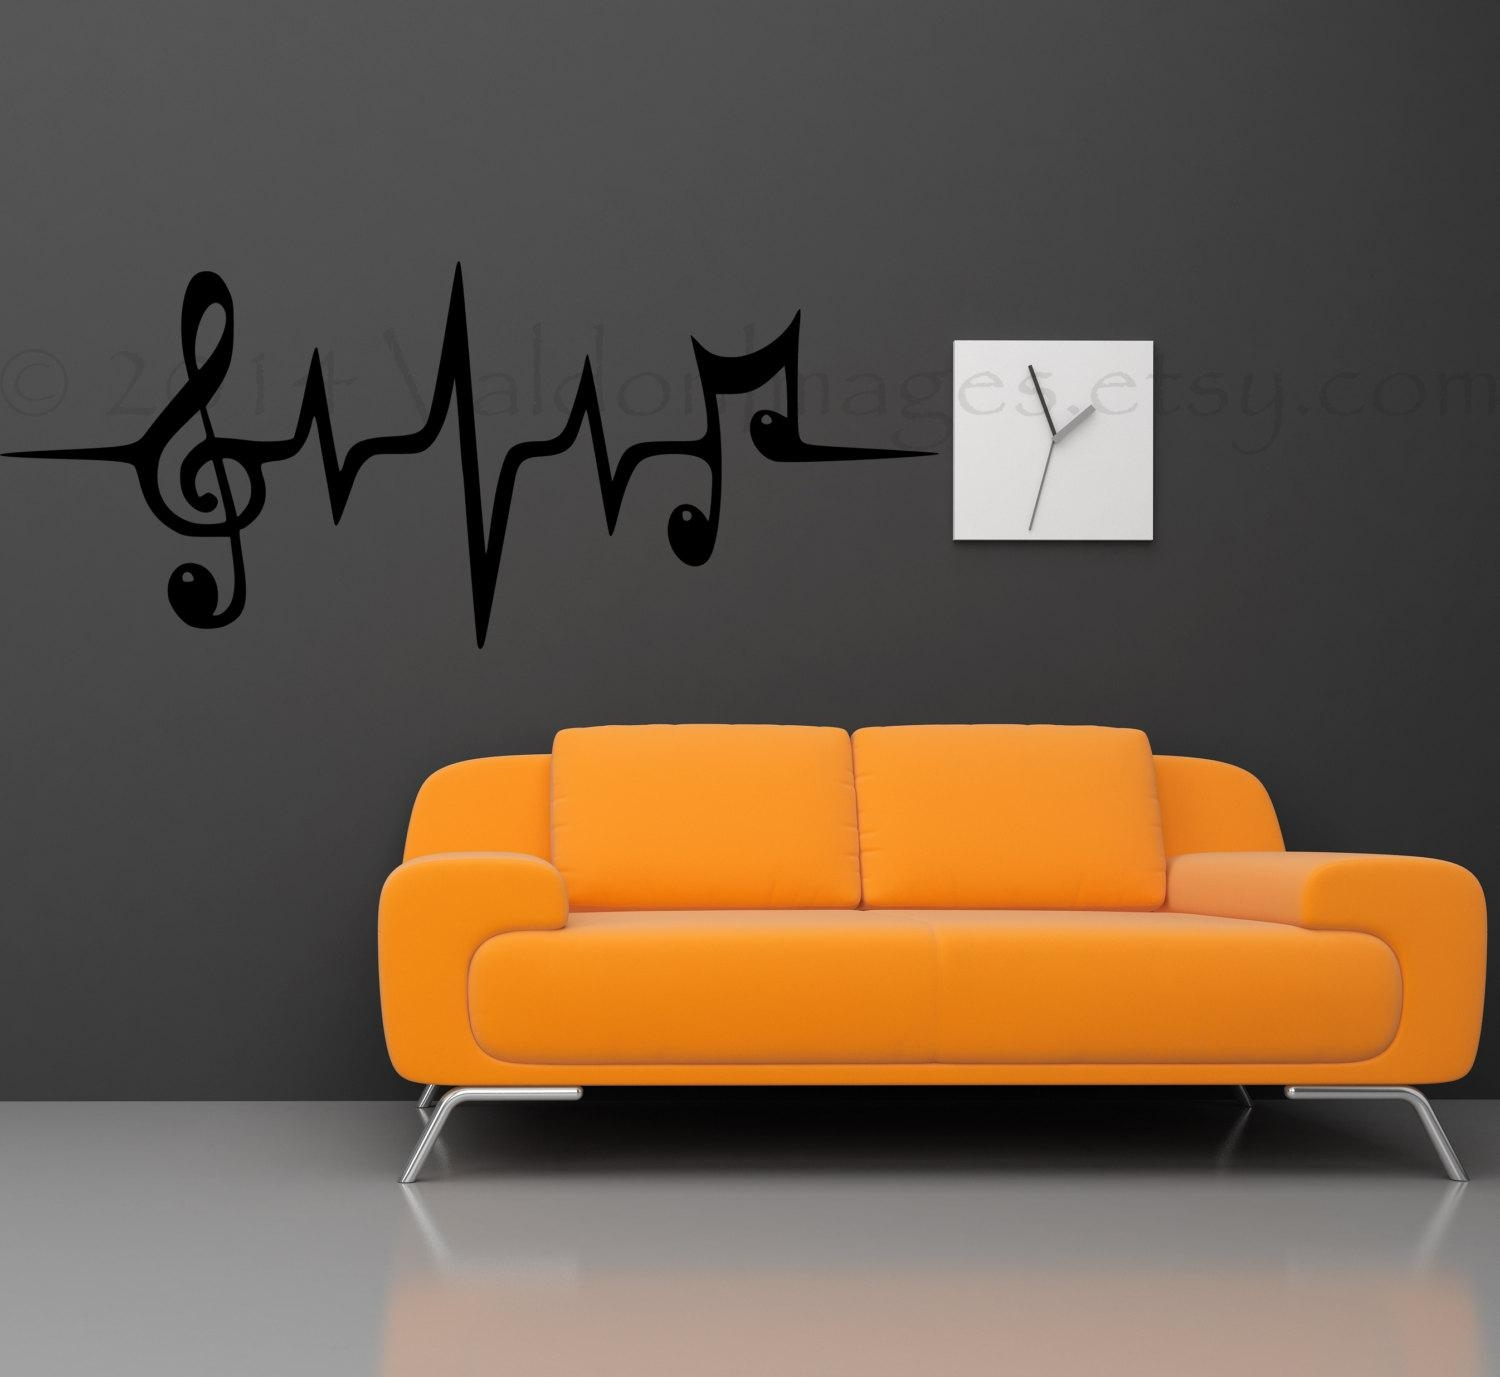 Music Note Wall Decal Music Wall Decal Heartbeat Wall In Music Notes Wall Art Decals (Image 7 of 20)